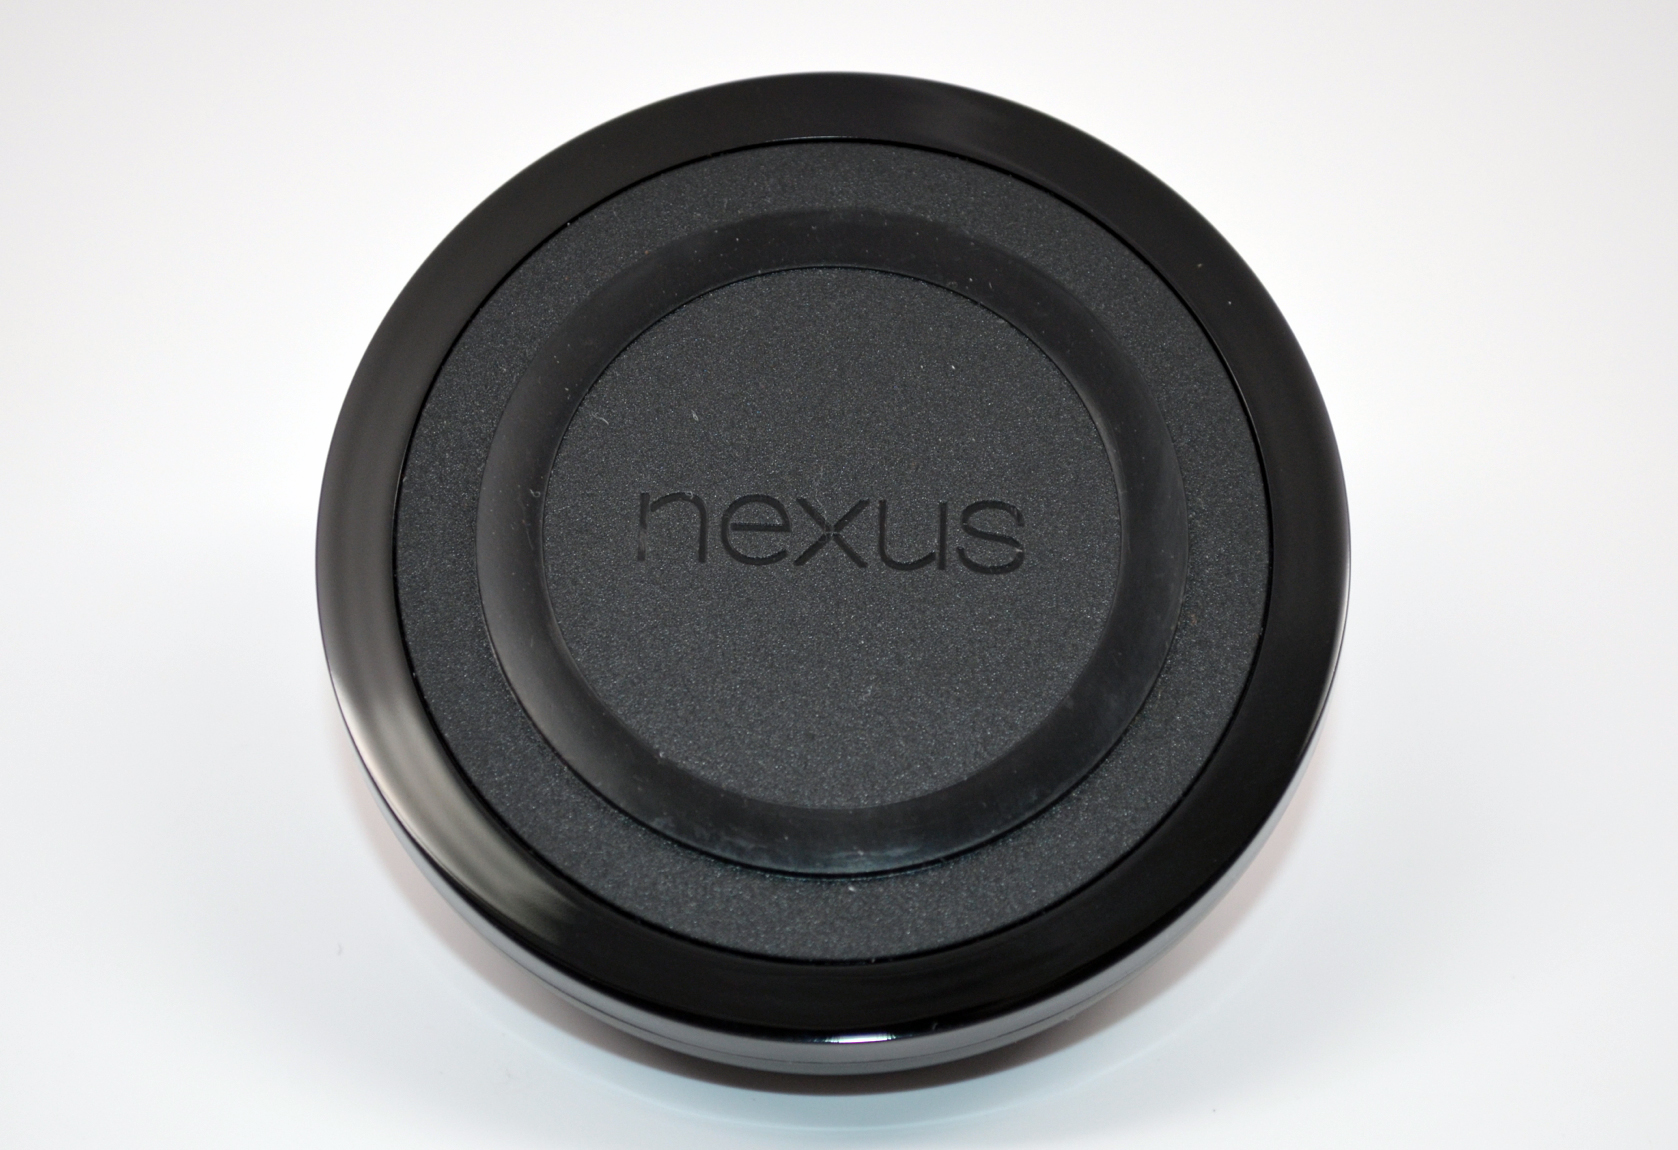 Nexus Wireless Charger (2013) Review: You Get What You Pay For